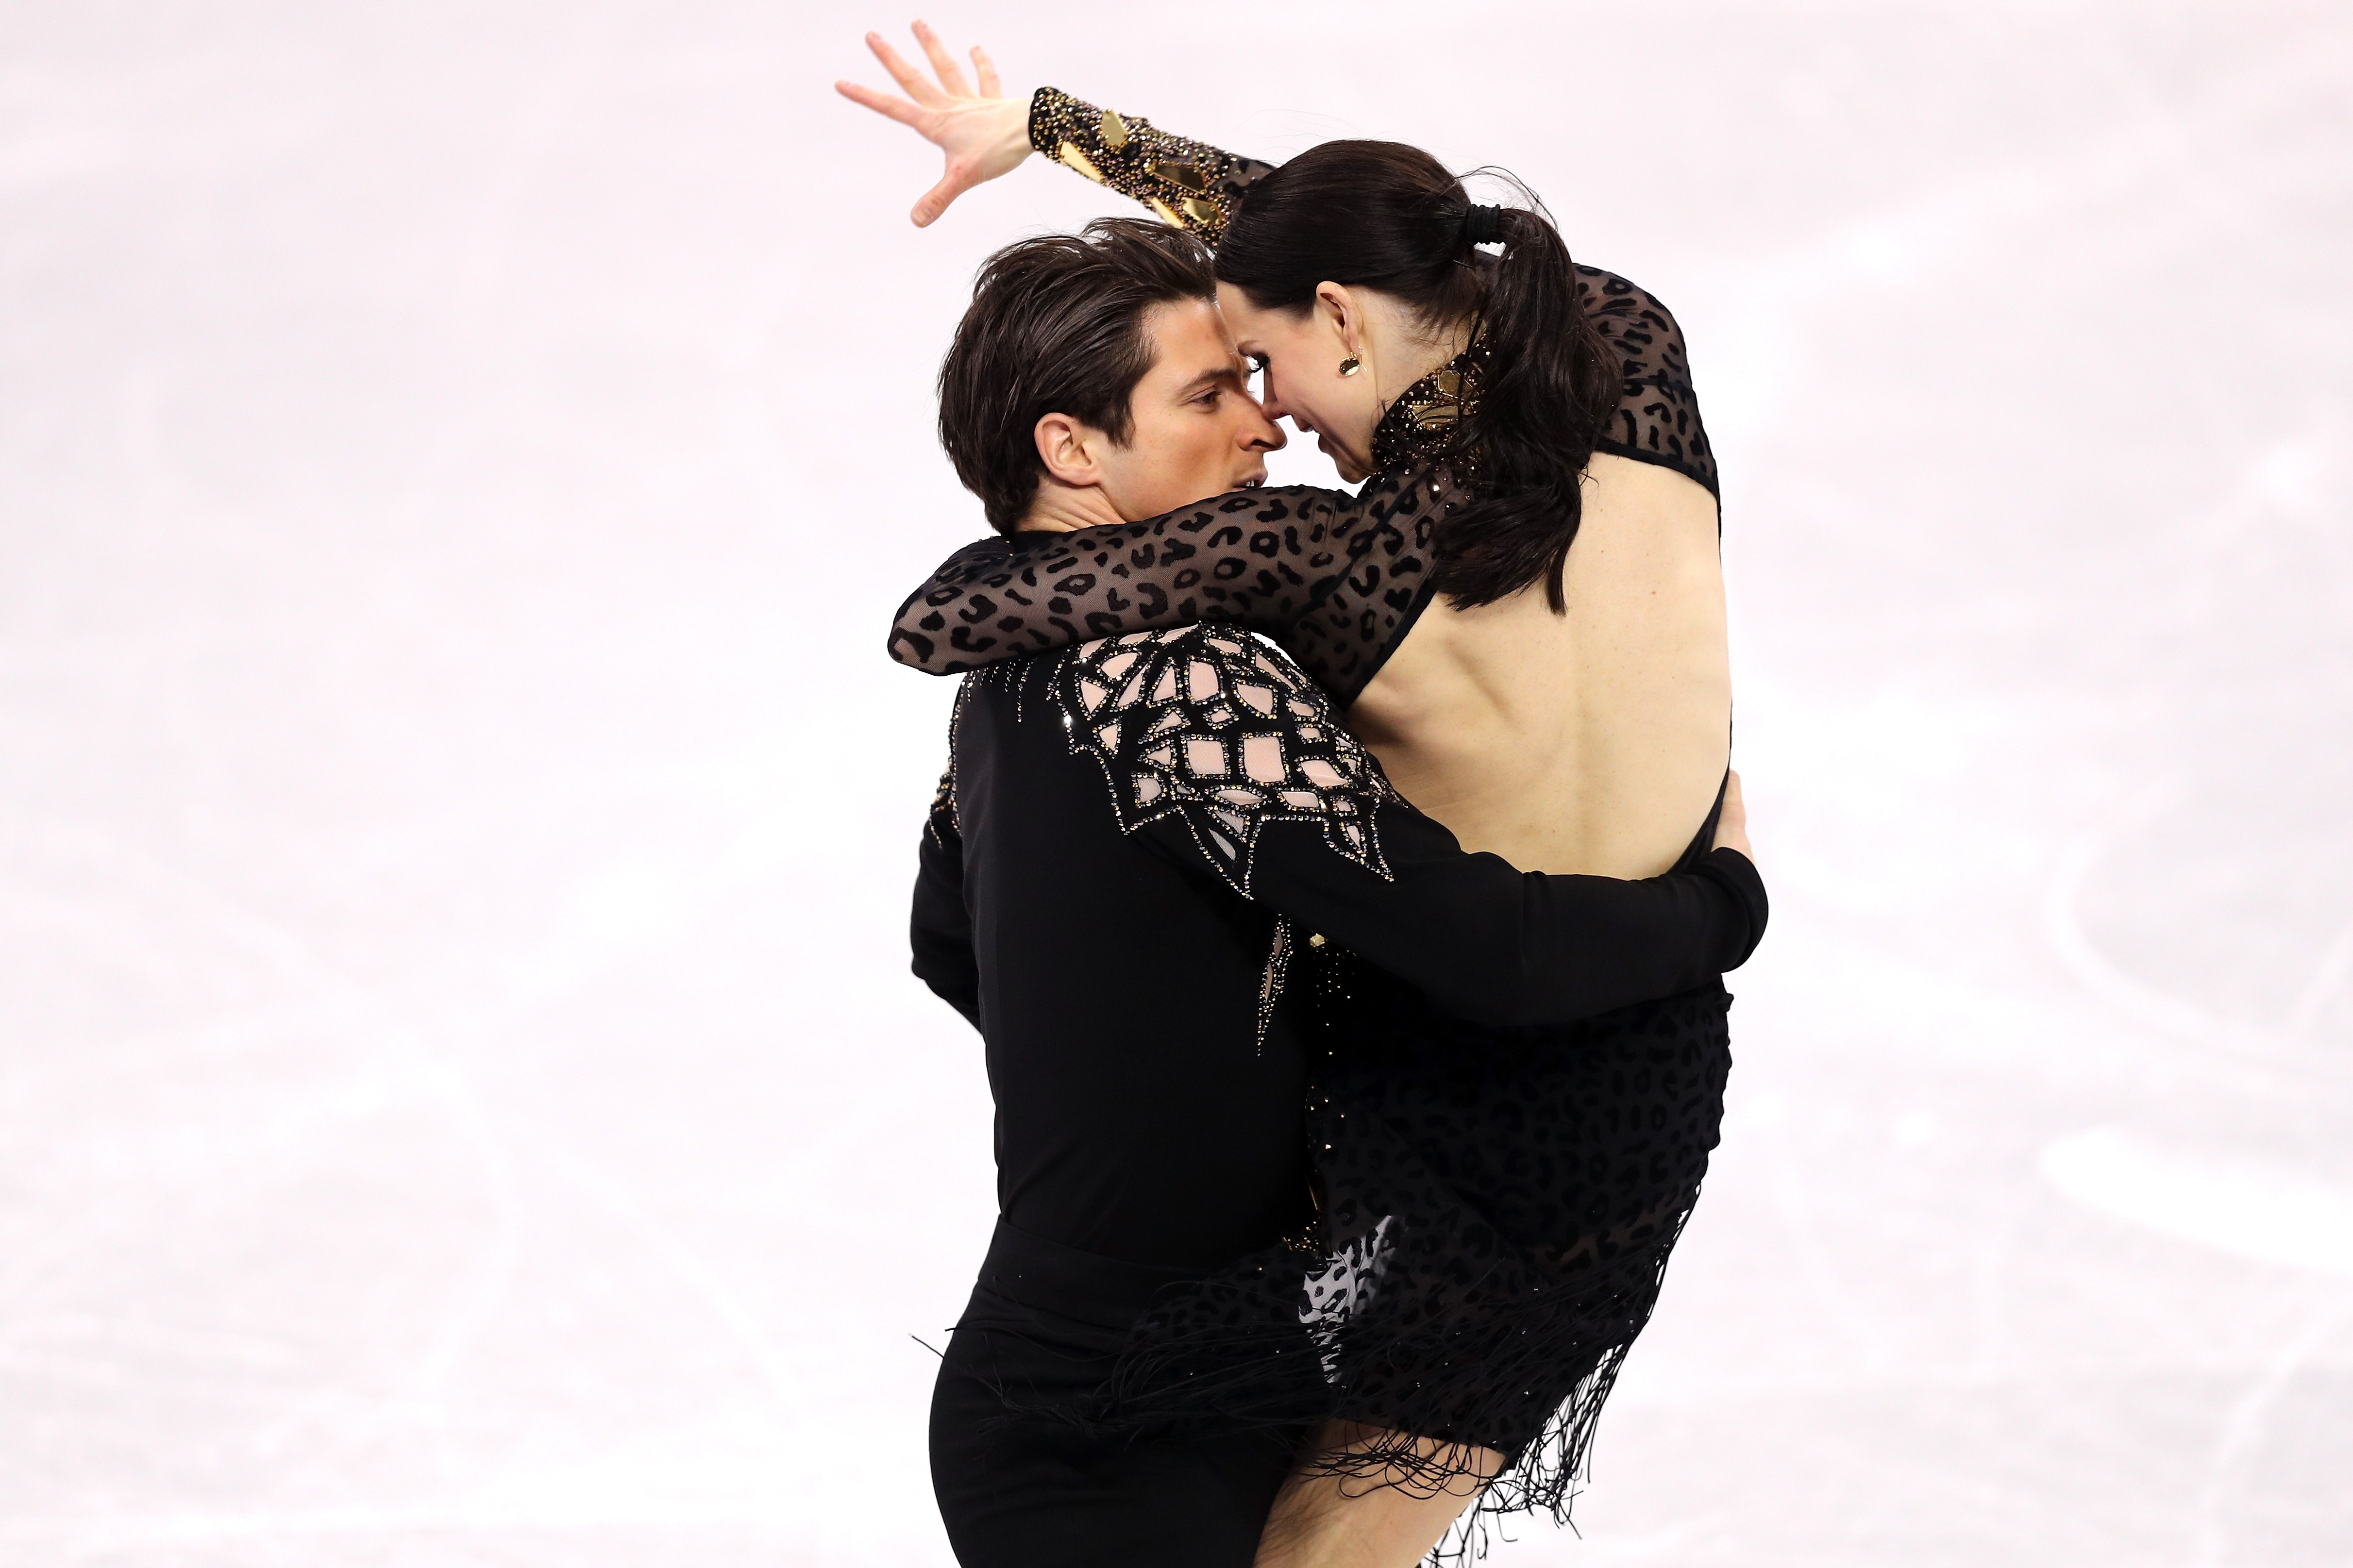 Tessa Virtue and Scott Moir of Canada compete during the Figure Skating Ice Dance Short Dance on day 10 of the PyeongChang 2018 Winter Olympic Games at Gangneung Ice Arena on Feb. 19, 2018 in Pyeongchang-gun, South Korea.